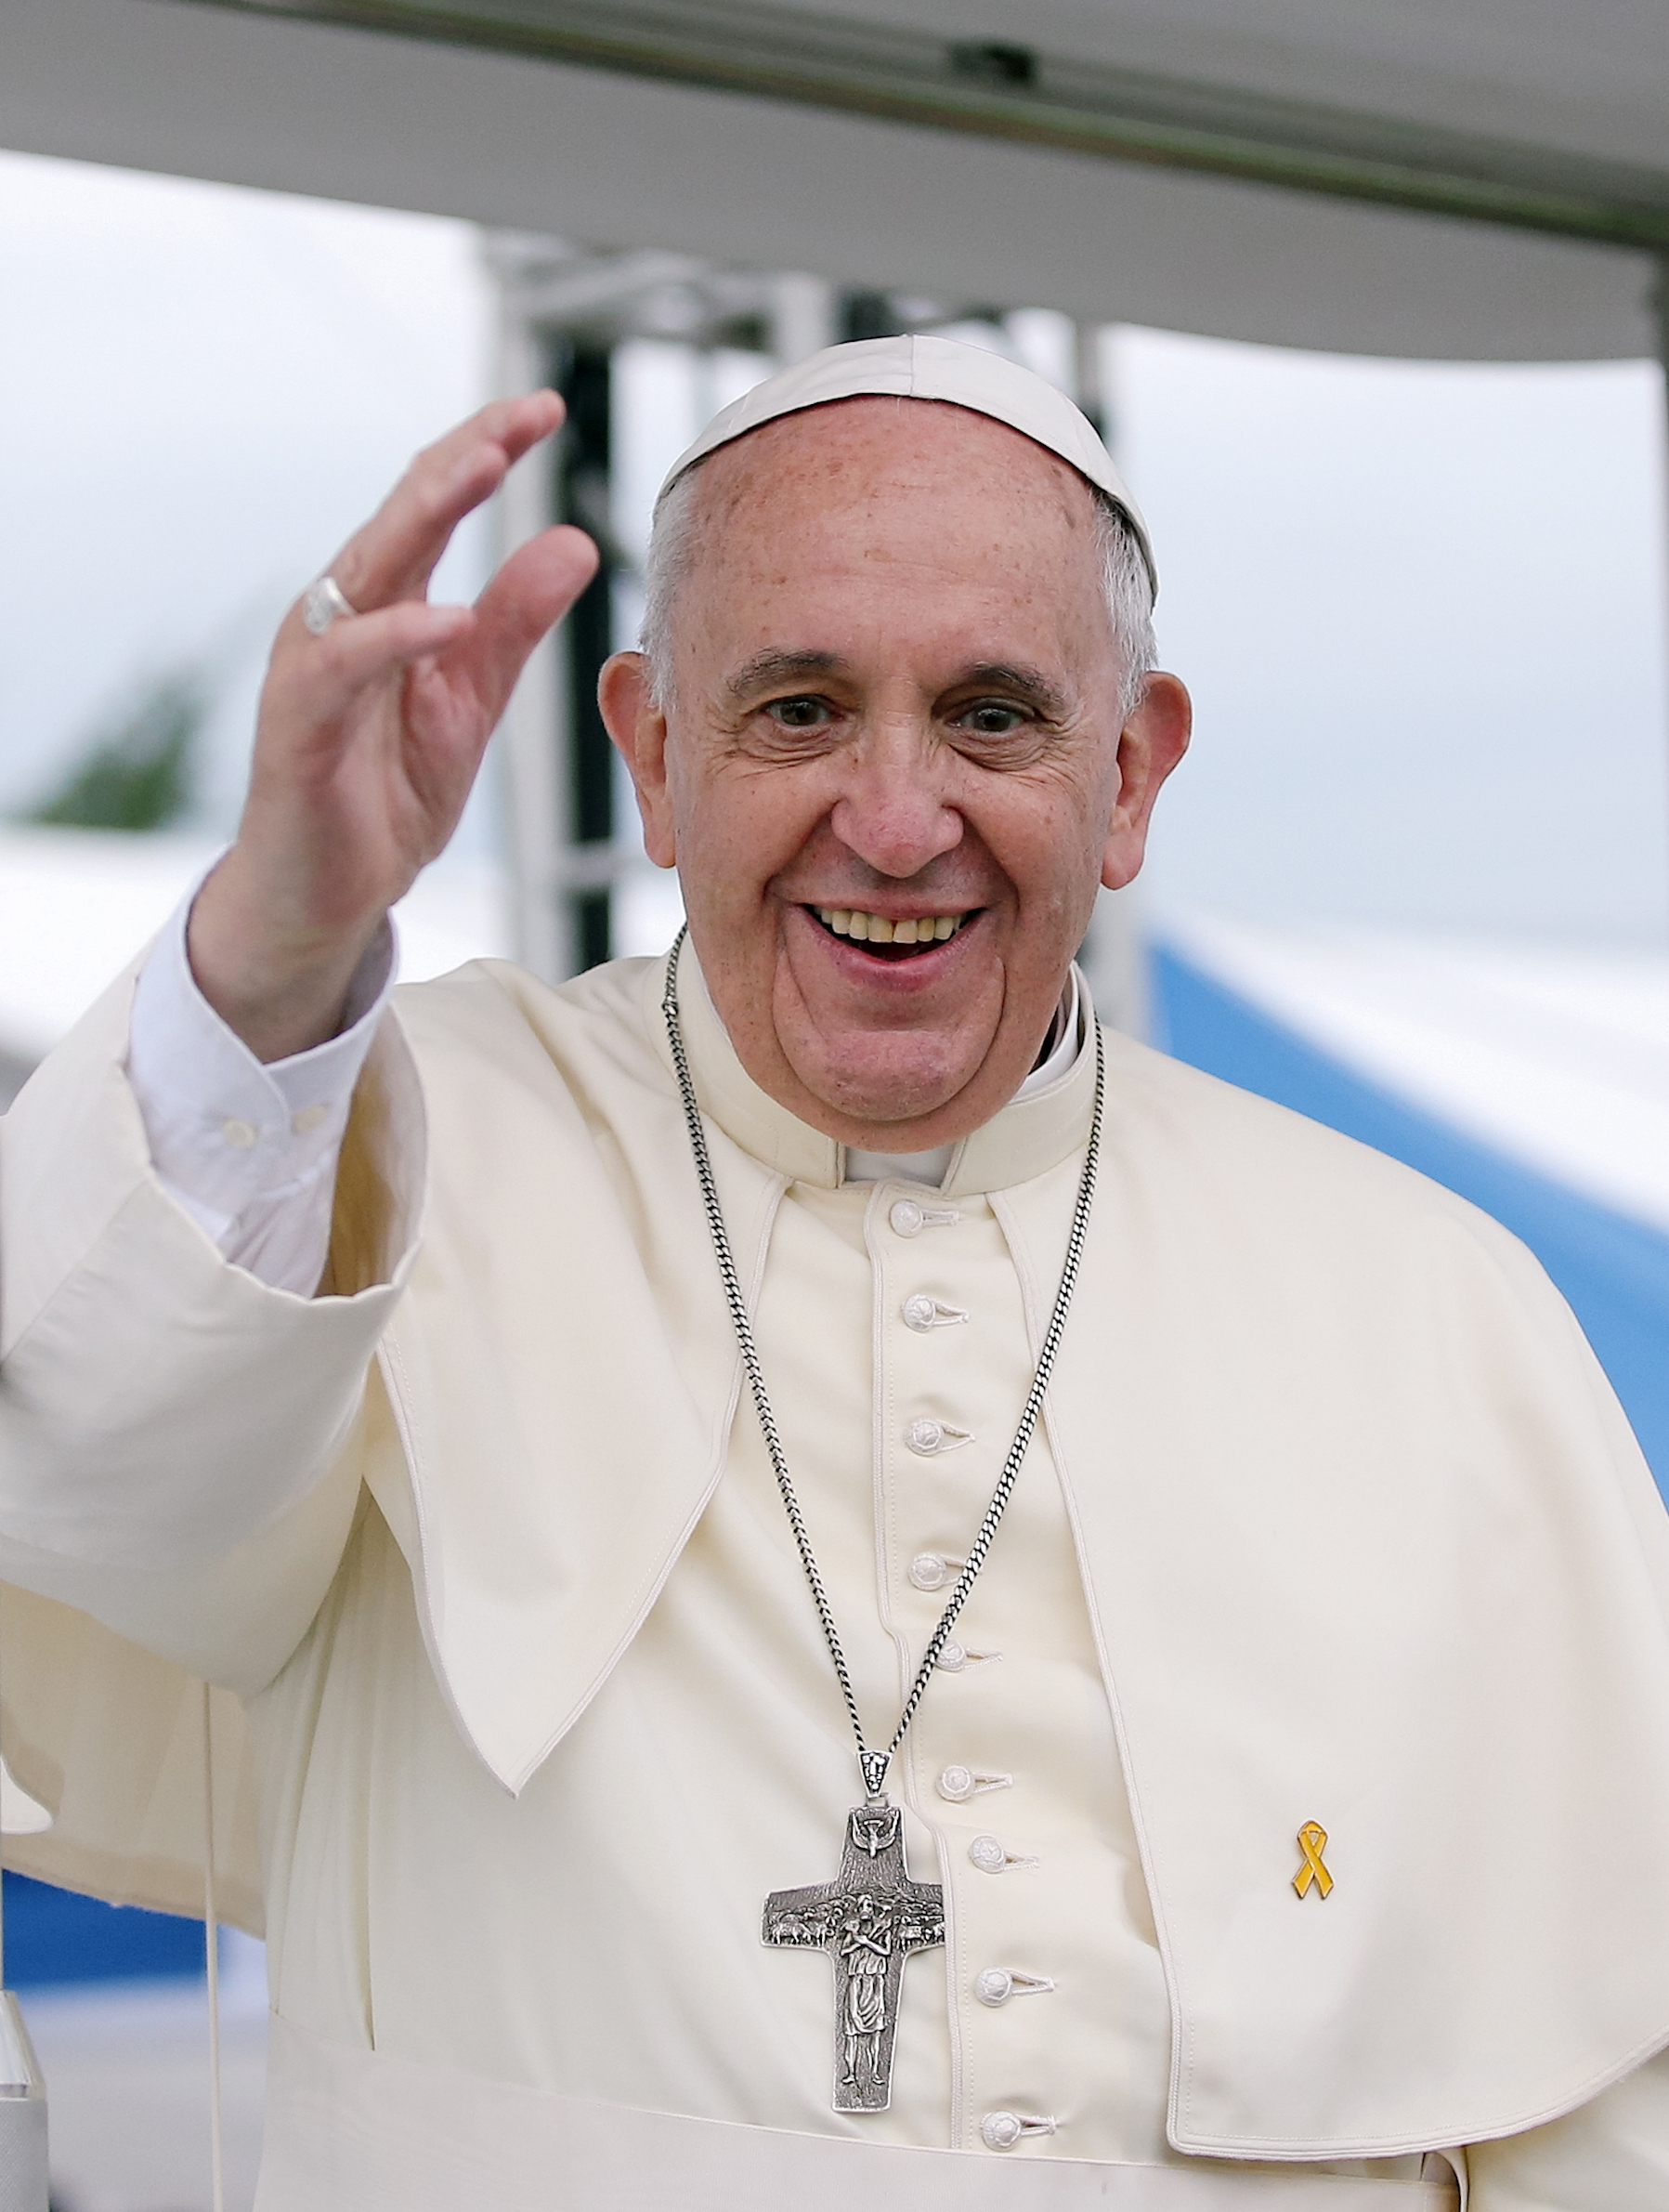 pope a f b single men Pope francis entrusts this mission to consecrated men and women: to discover the lord who comforts us like a mother, and to comfort the people of god service in the church arises out of the joy of meeting the lord and from his call.